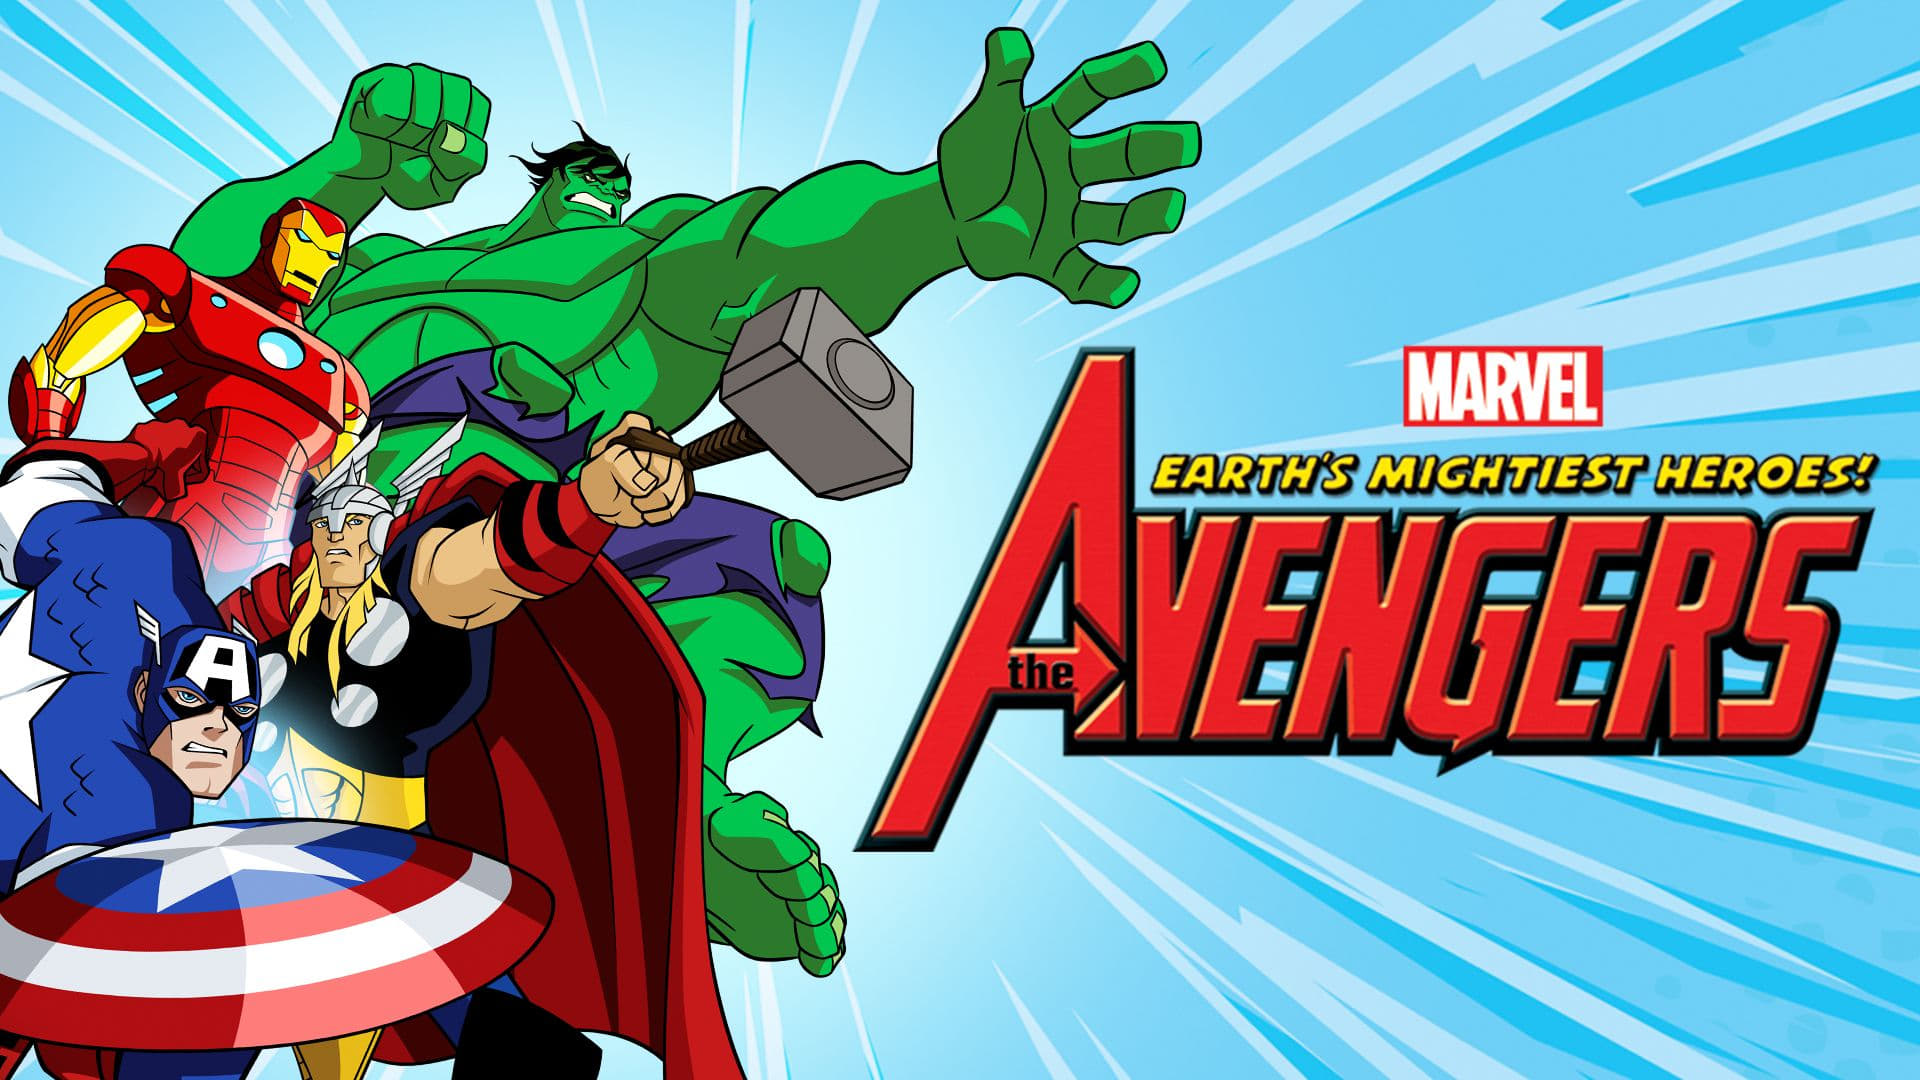 The Avengers: Earth's Mightiest Heroes - Season the Episode avengers